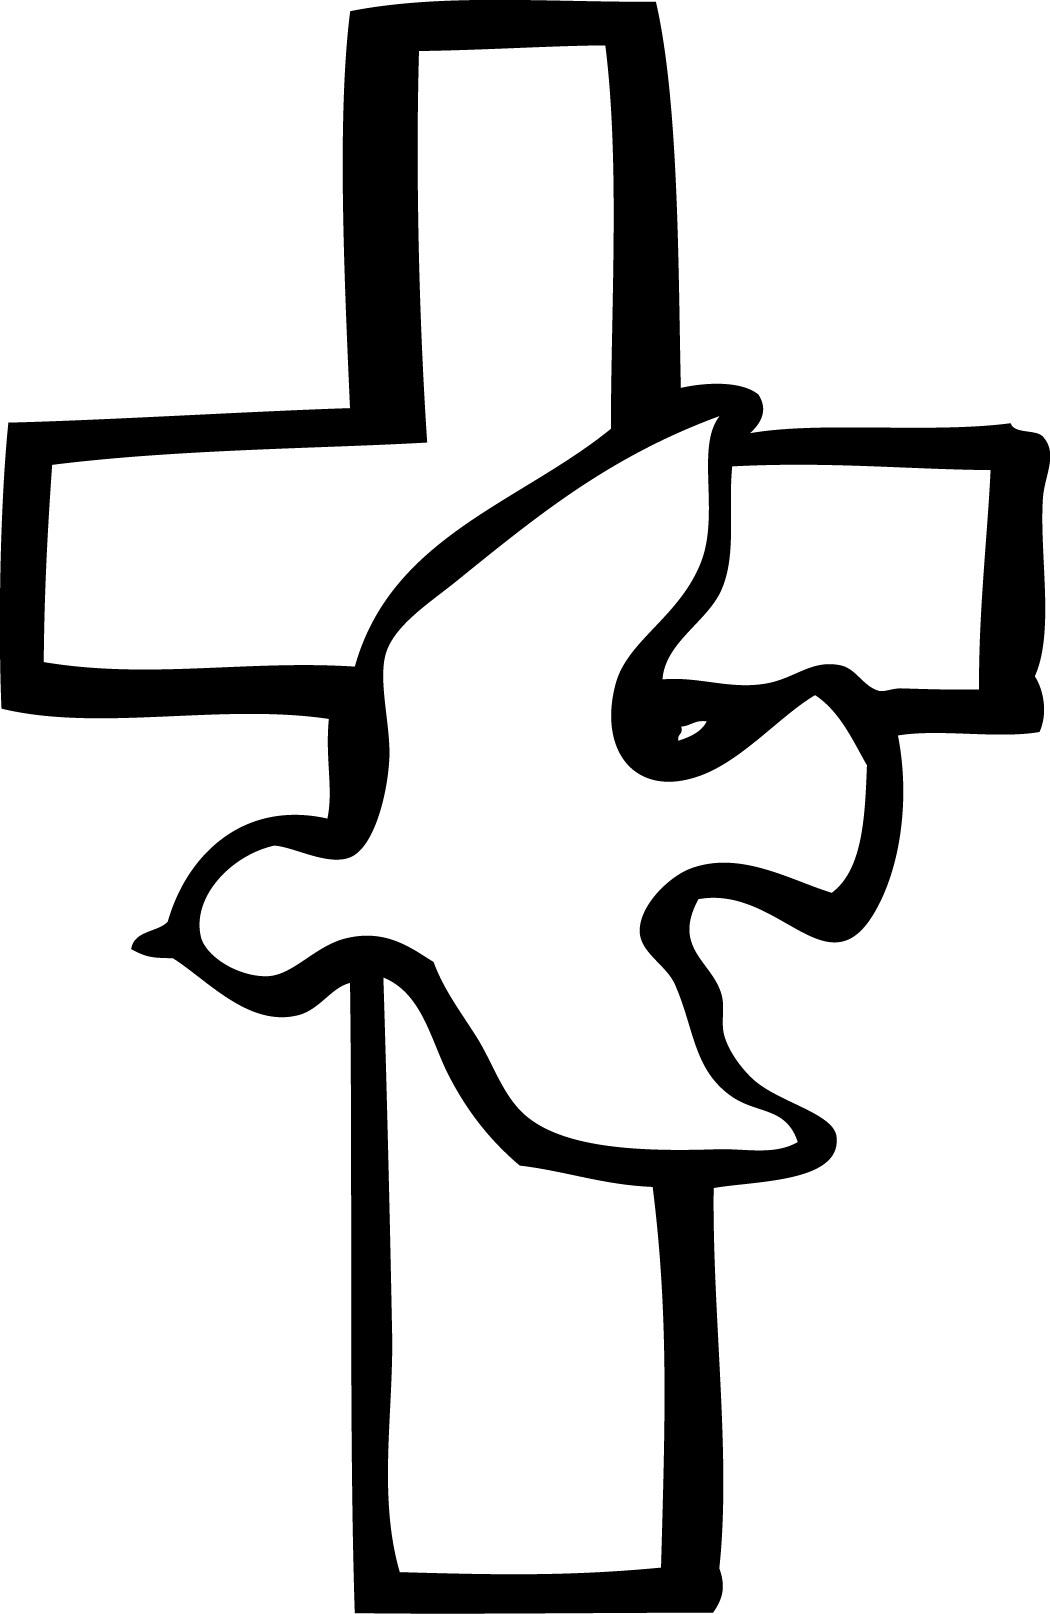 Free Baptism Images Clipart, Download Free Clip Art, Free